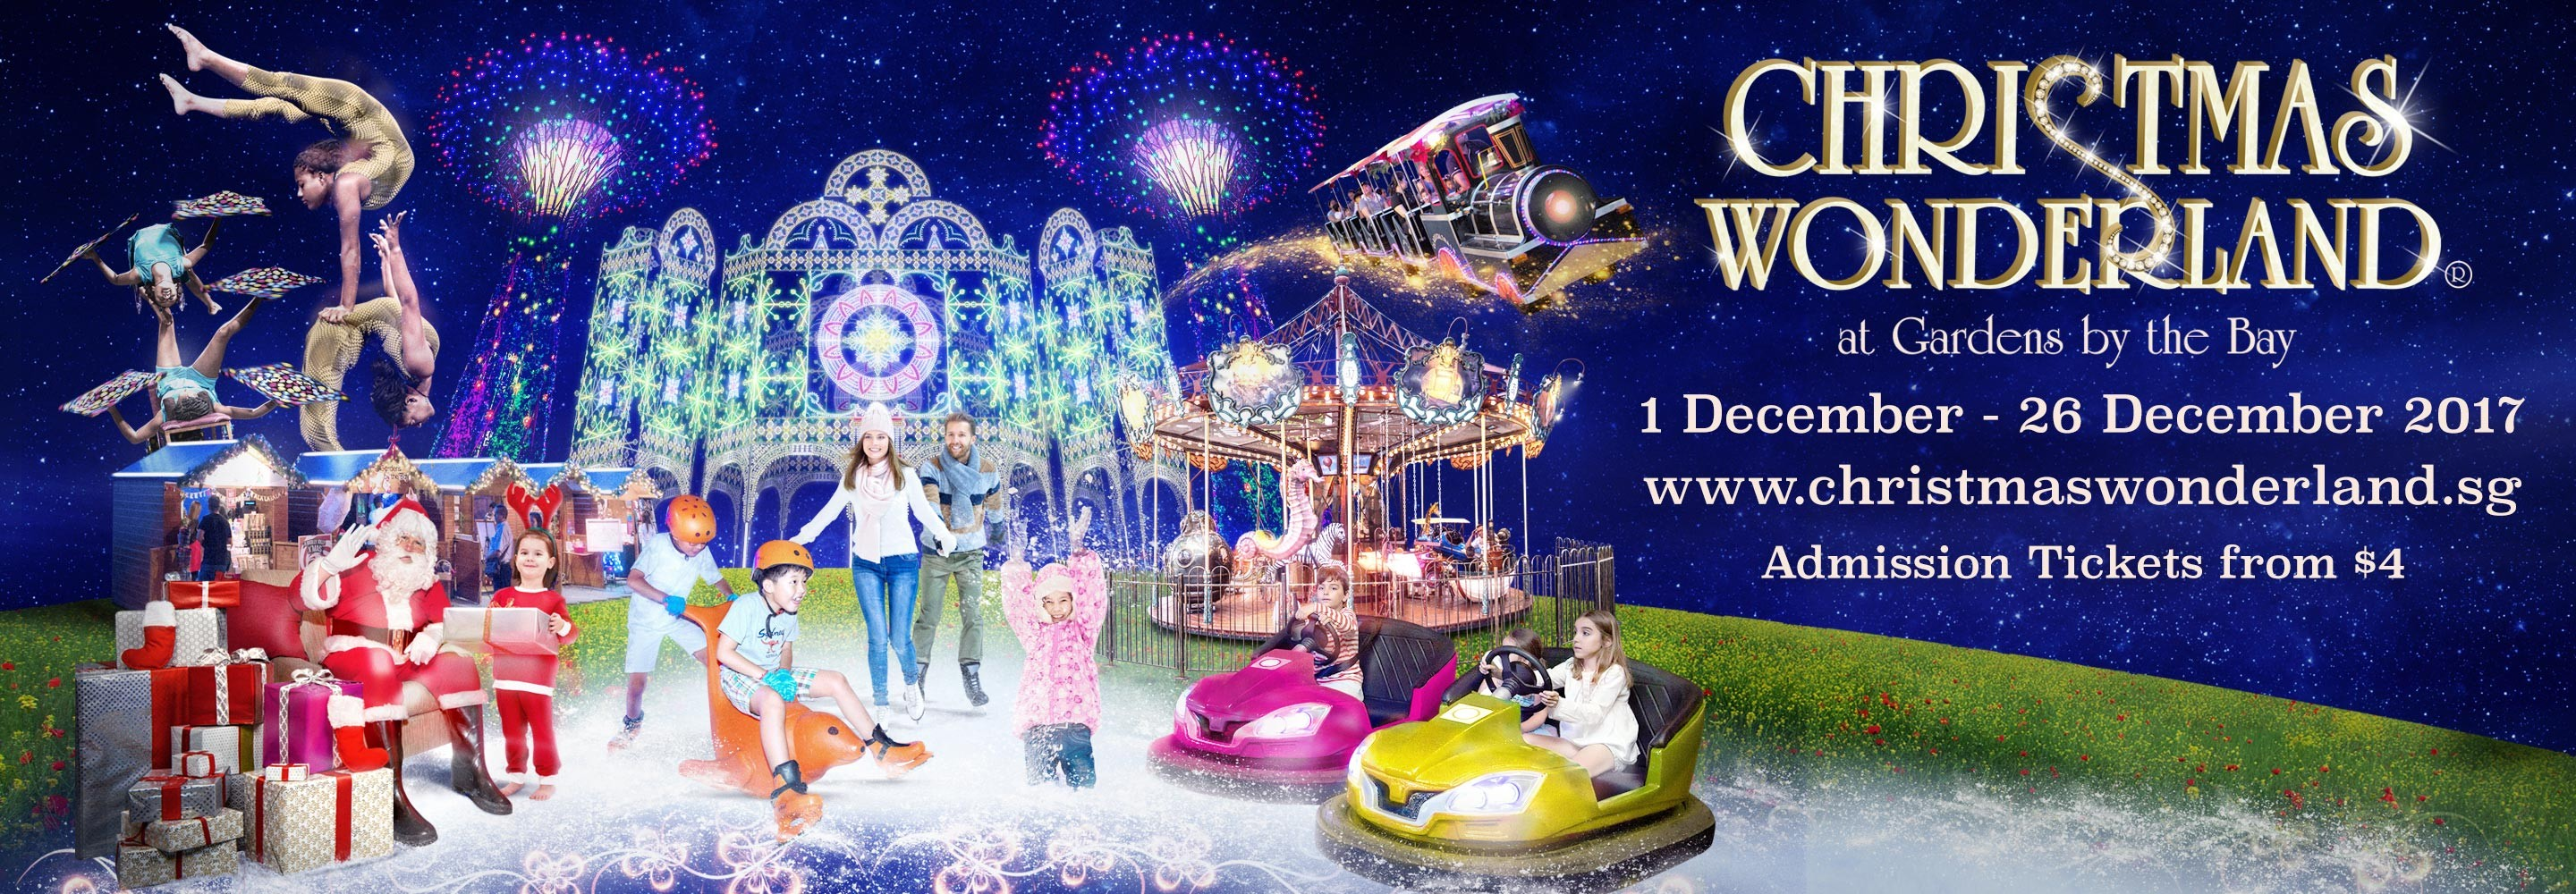 Christmas Wonderland Event Cover Photo